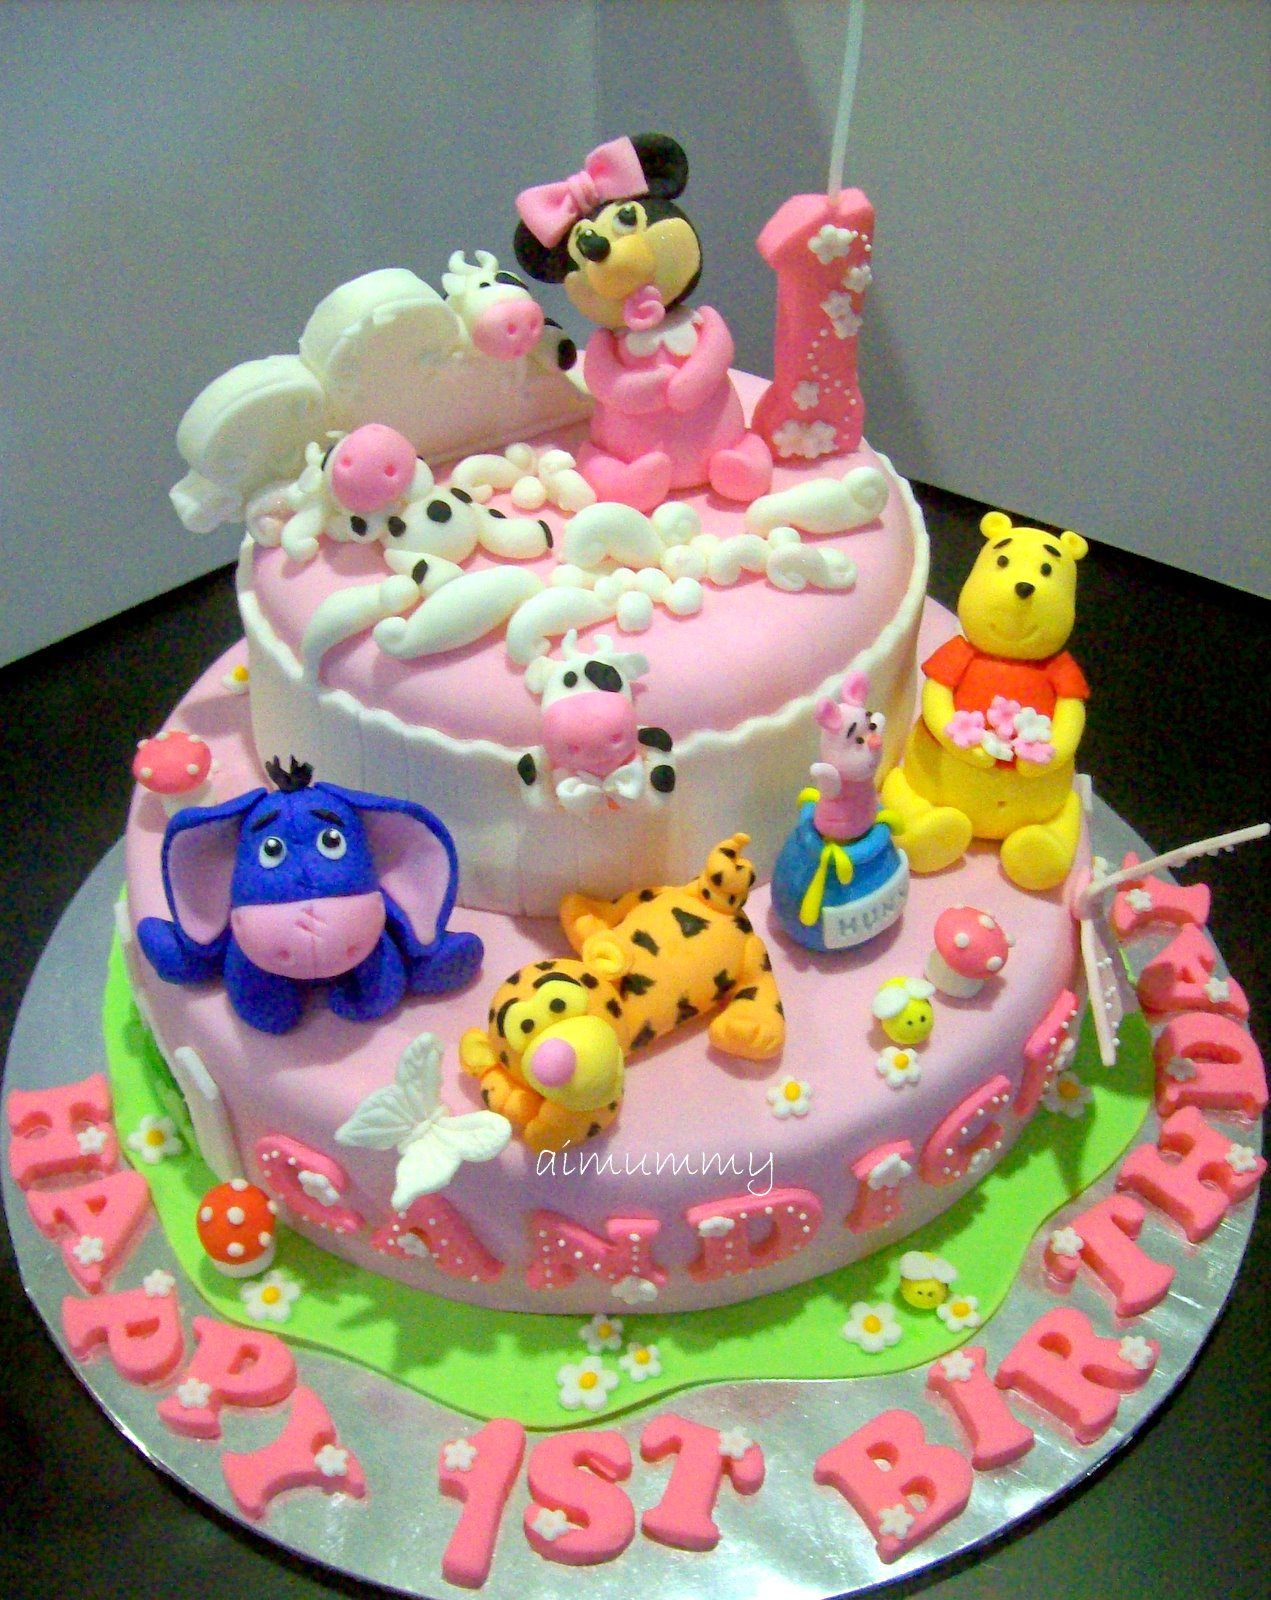 Birthday Cake Ideas And Pictures : AiMummy: Another sweet pooh & minnie cake